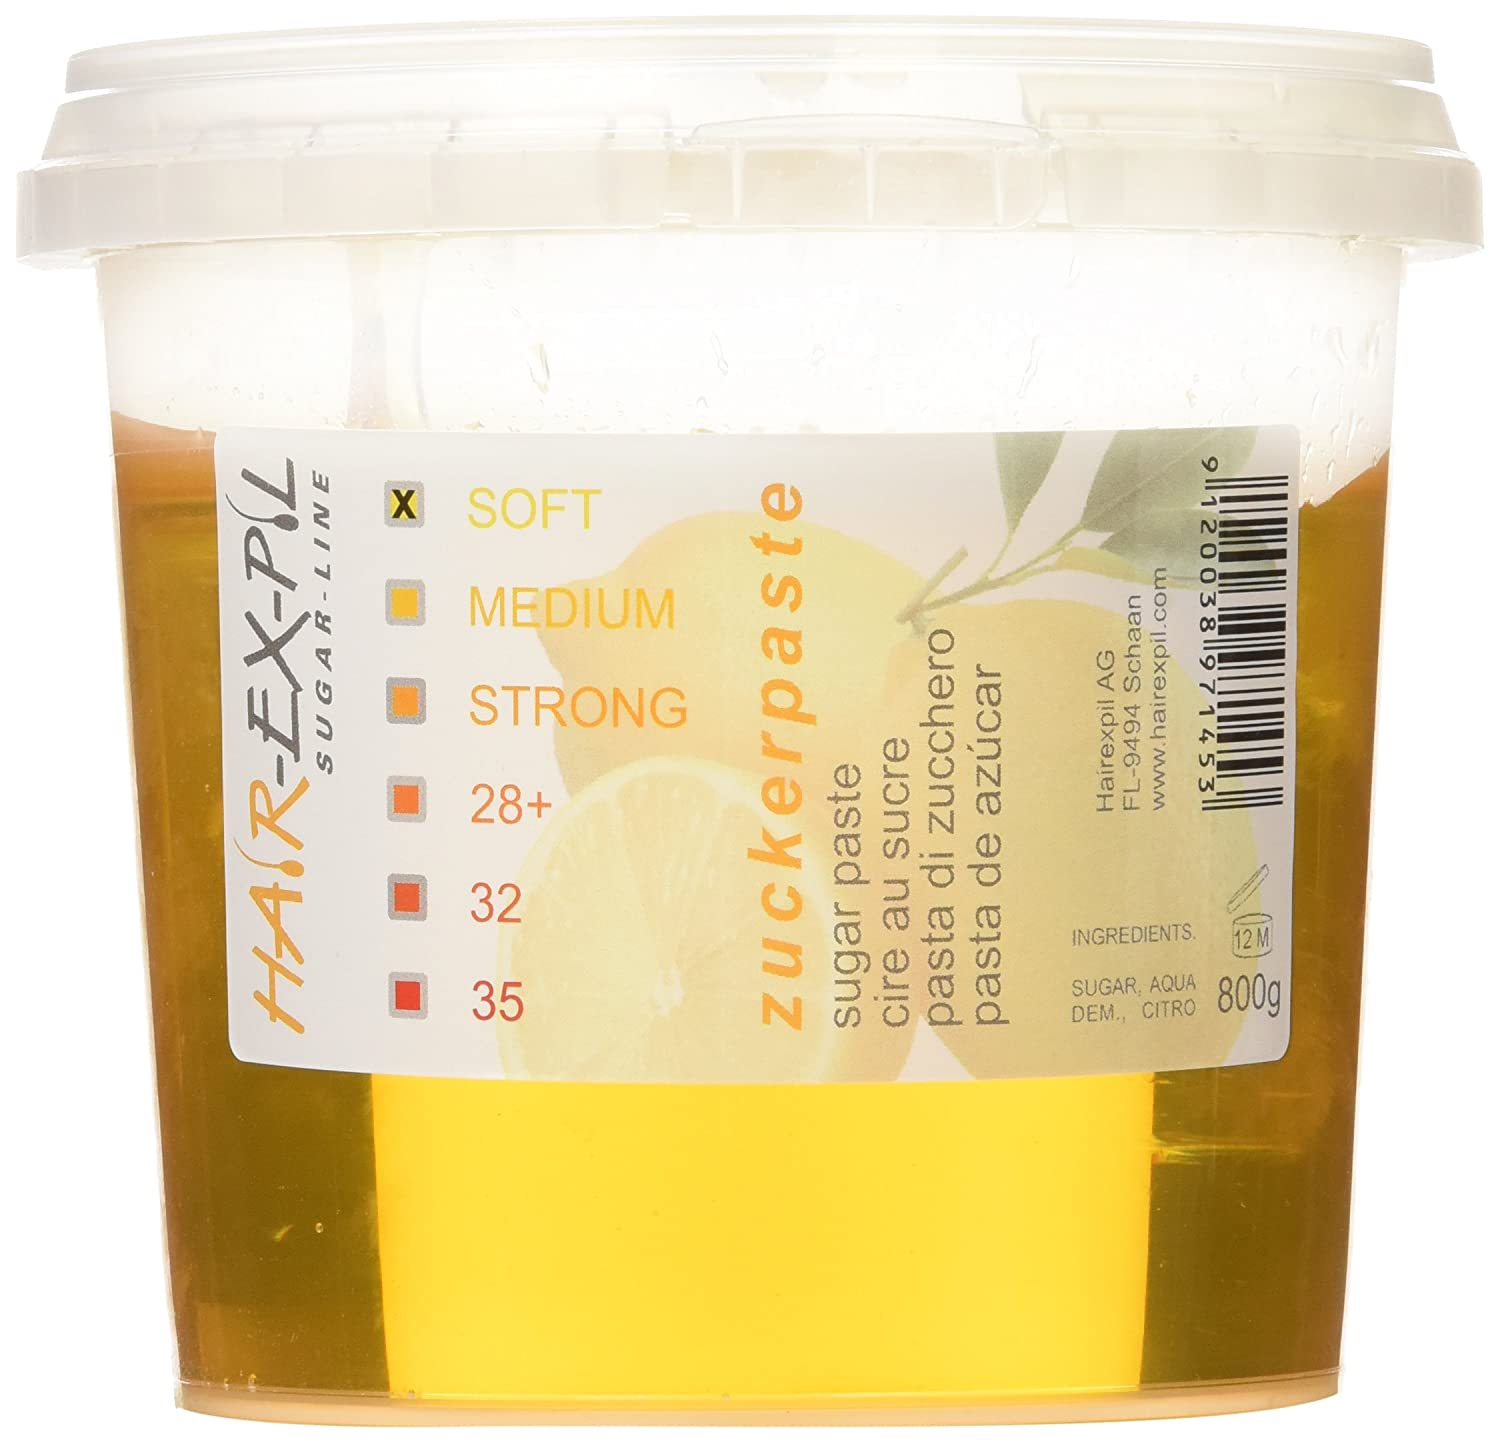 Sugar Paste Soft - Premium Quality. Highly-effective Adesiveness. 800gr Container Sugaring Sugar Paste XPS-Soft